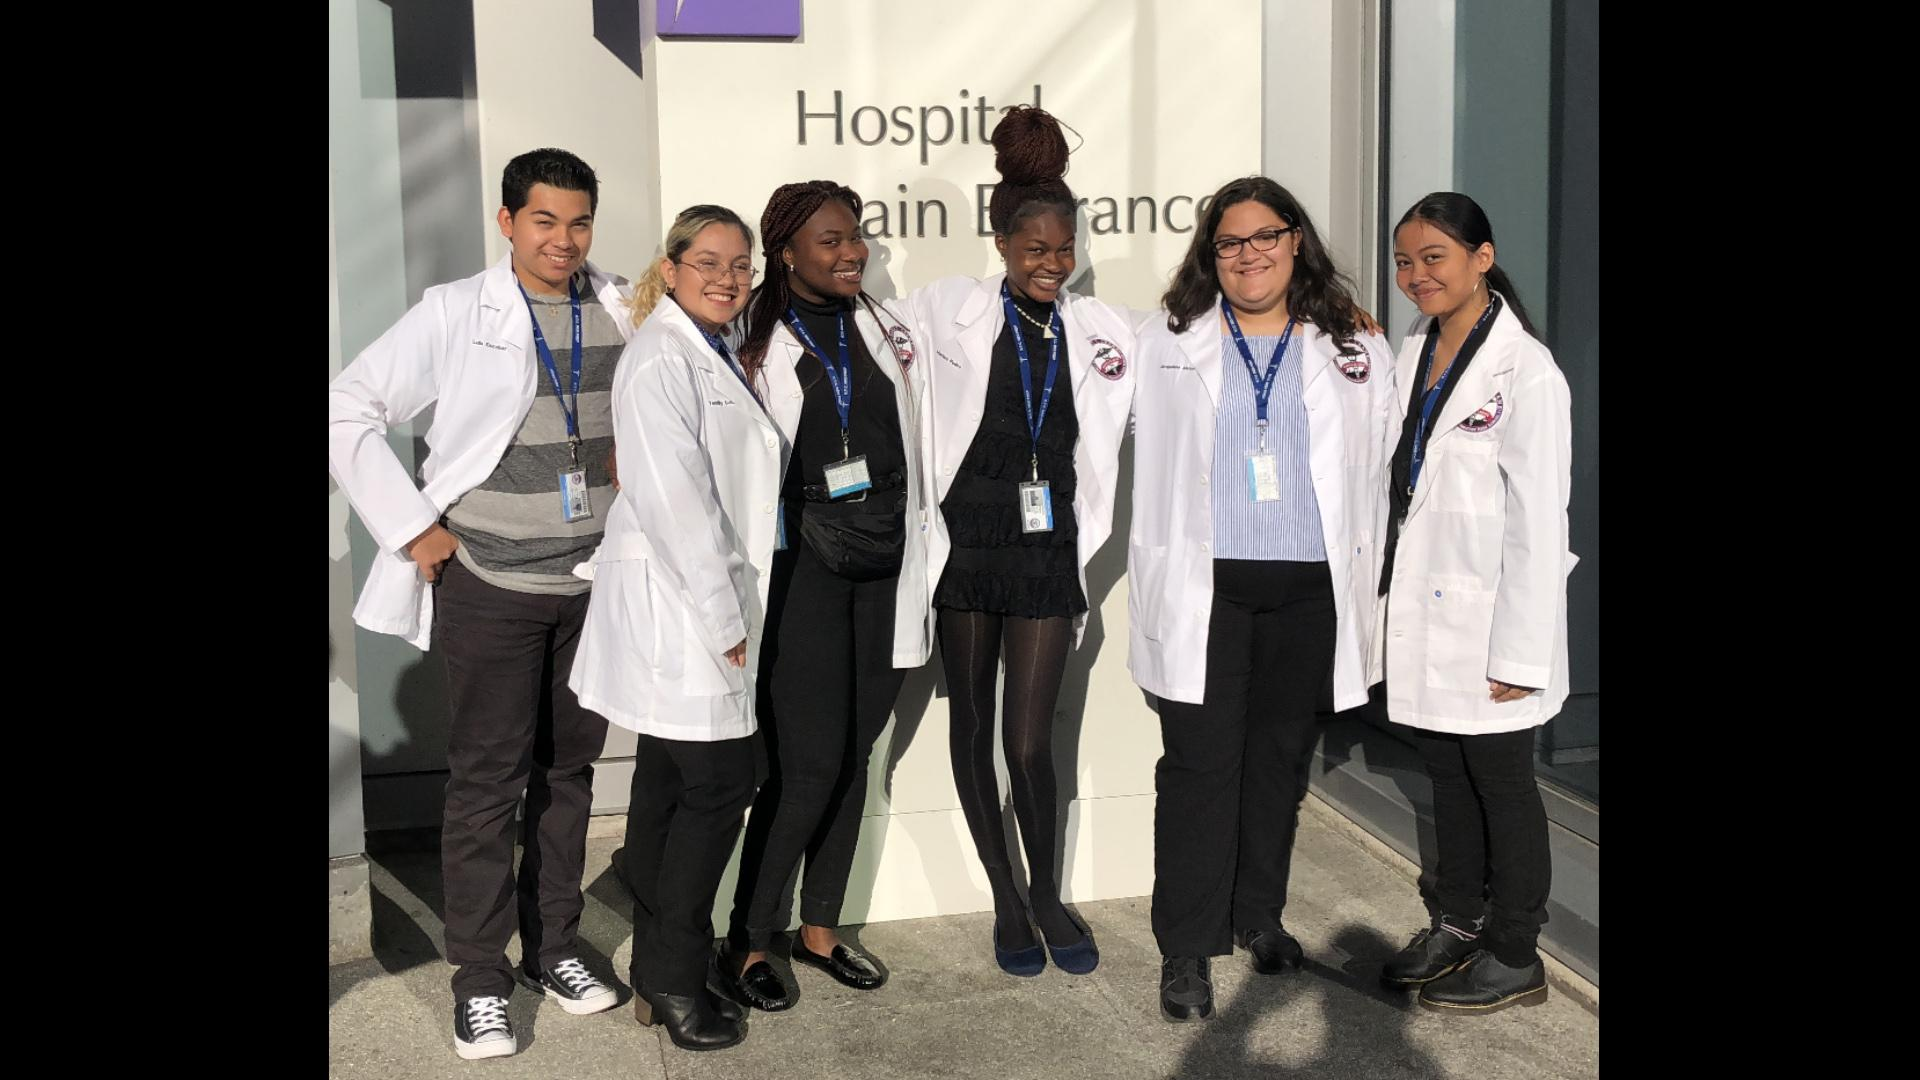 Chasity Kasir, far right, and her Health Occupations Students of America teammates had the opportunity to see a live open heart surgery. (Photo courtesy Chasity Kasir)